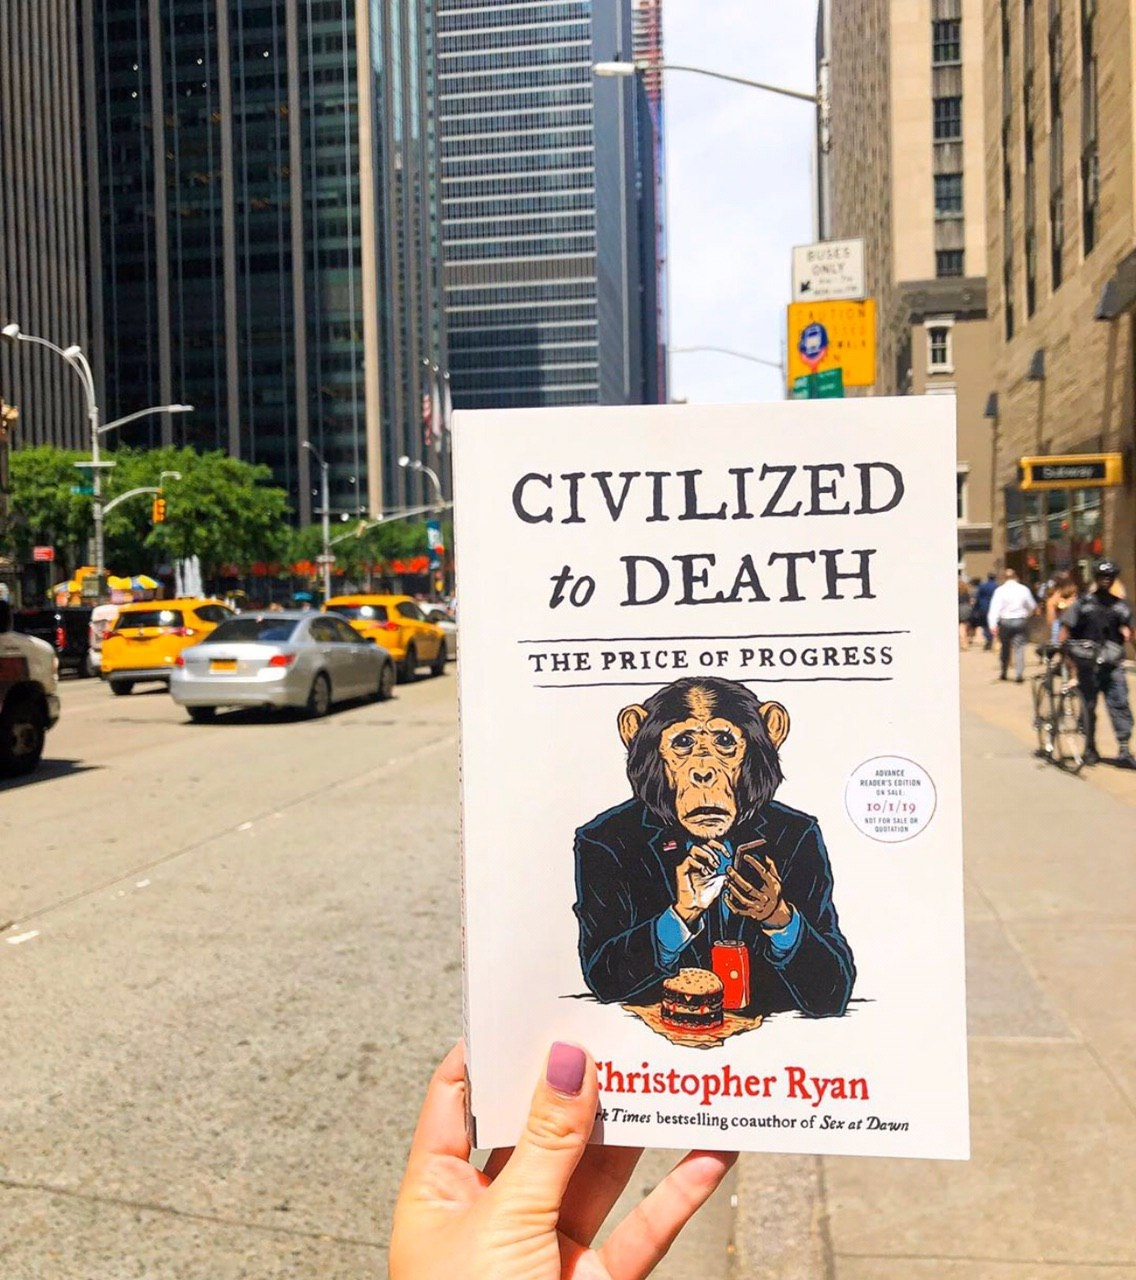 Civilized to death 2019 book cover